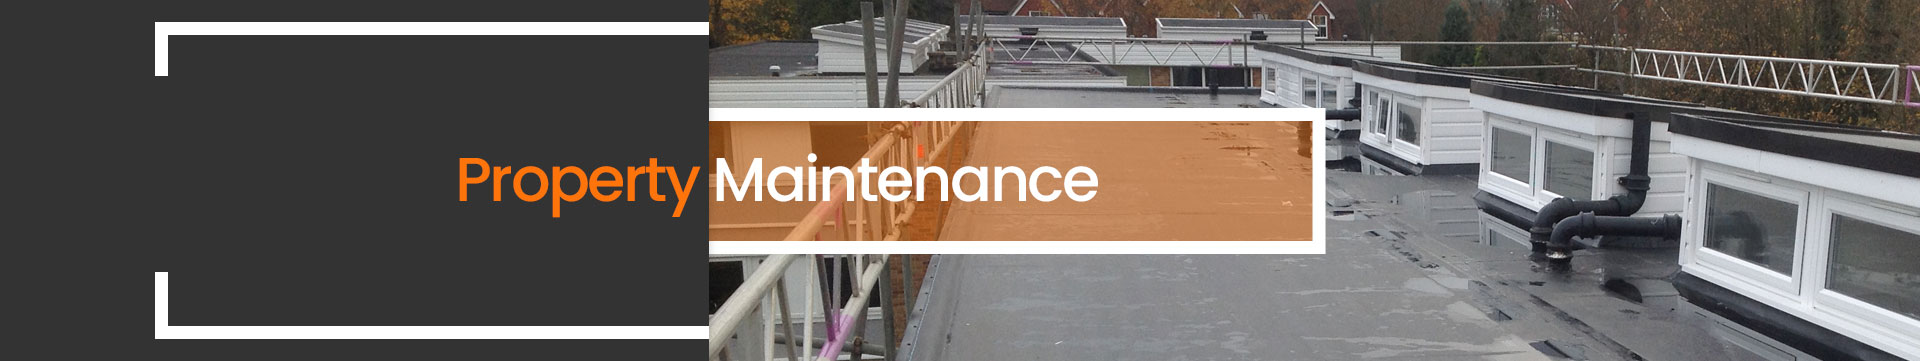 Property Maintenence Company Crawley, West Sussex Banner Image